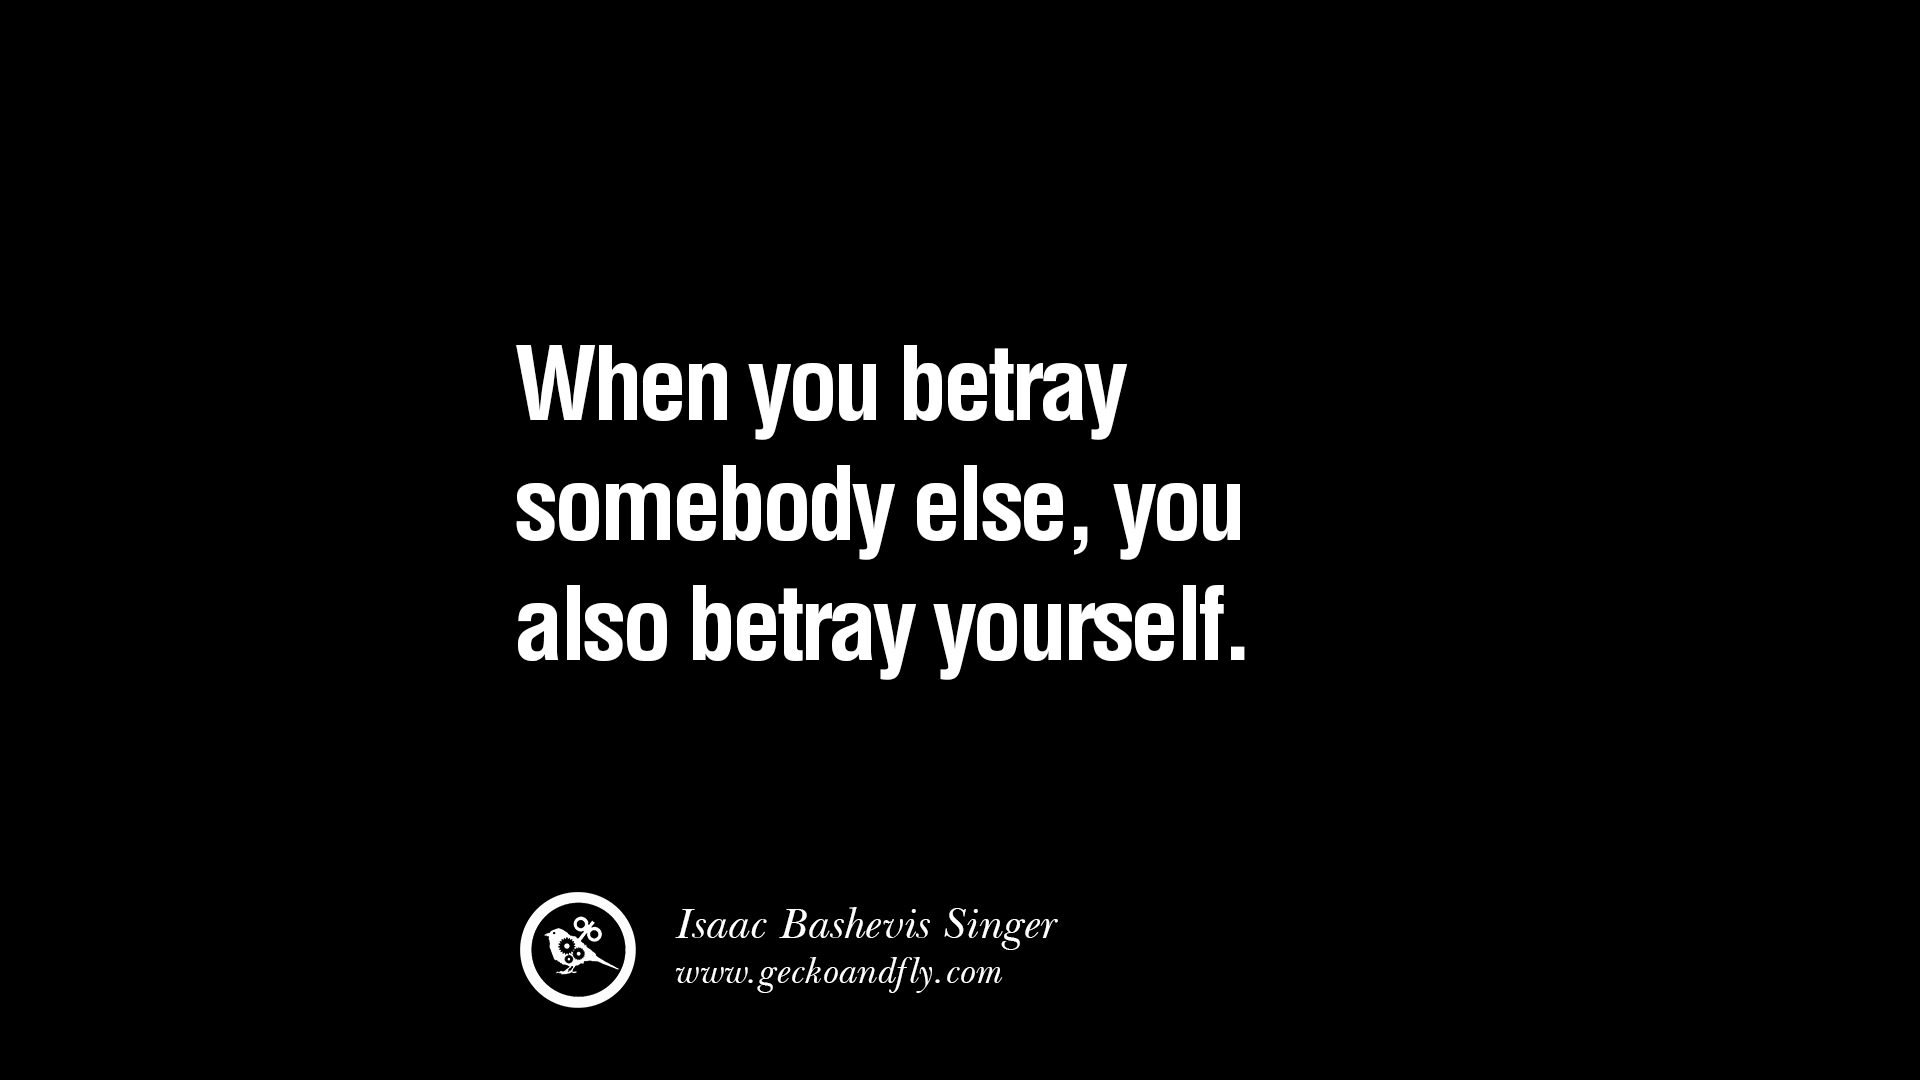 Bible Quotes About Family Betrayal: Famous Betrayal Quotes And Love. QuotesGram